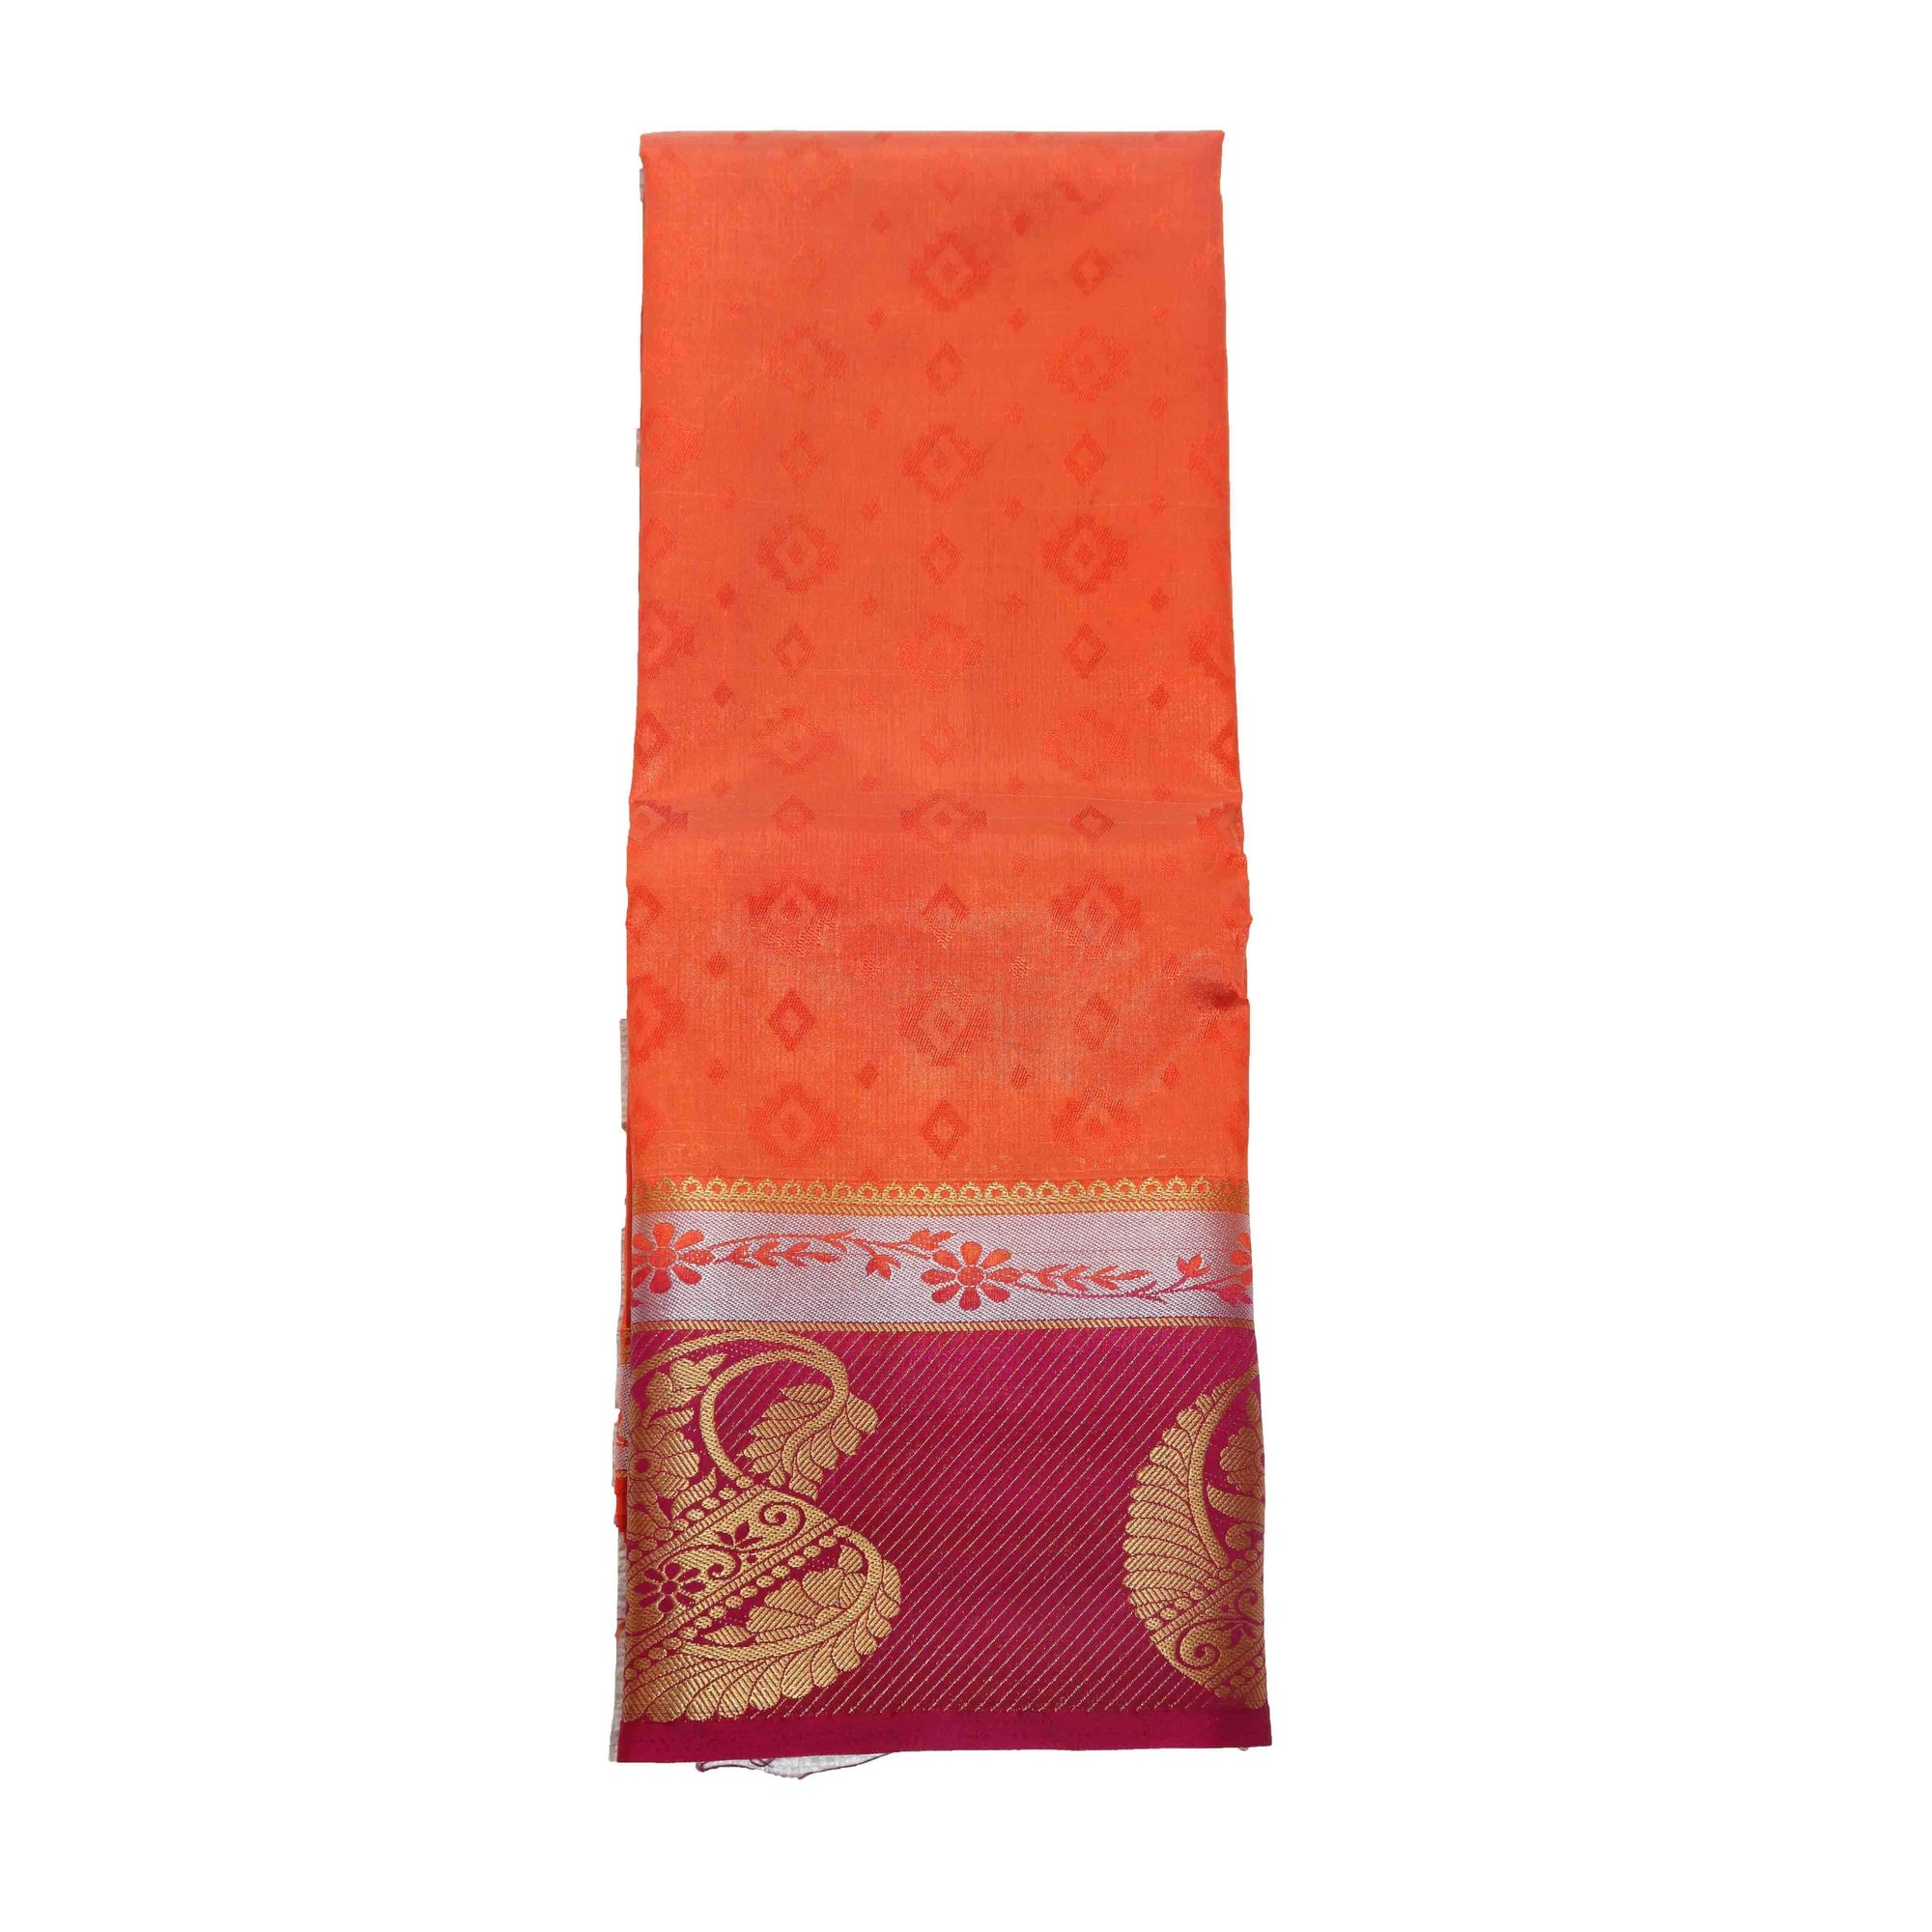 arars Women's kanchipuram kanjivaram pattu kanjivaram embosed plain silk saree with blouse (471, orange)